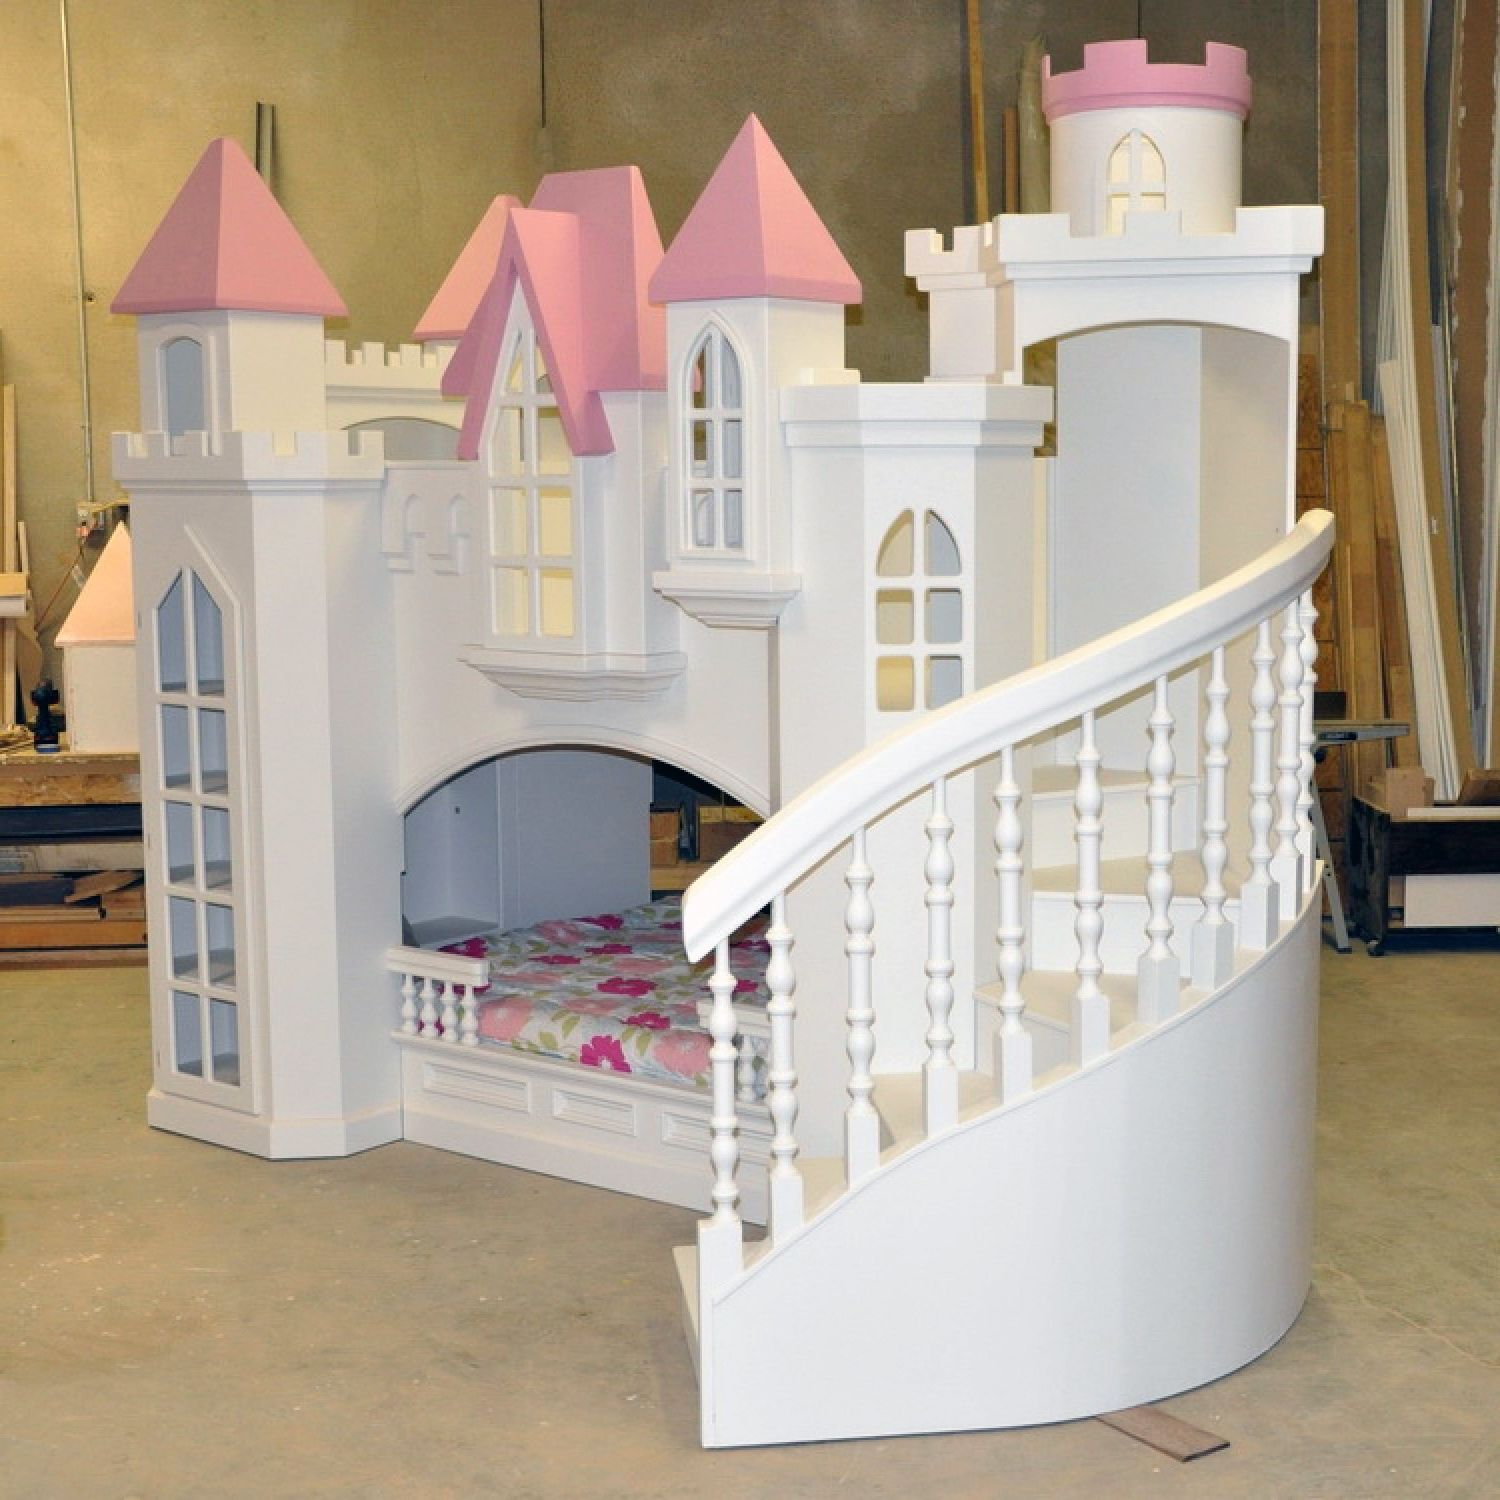 Bunk beds for kids with stairs - Unique Bunk Beds Unique Bunk Beds For Kids Bedroom Design Ideas Excellent Castle Bunk